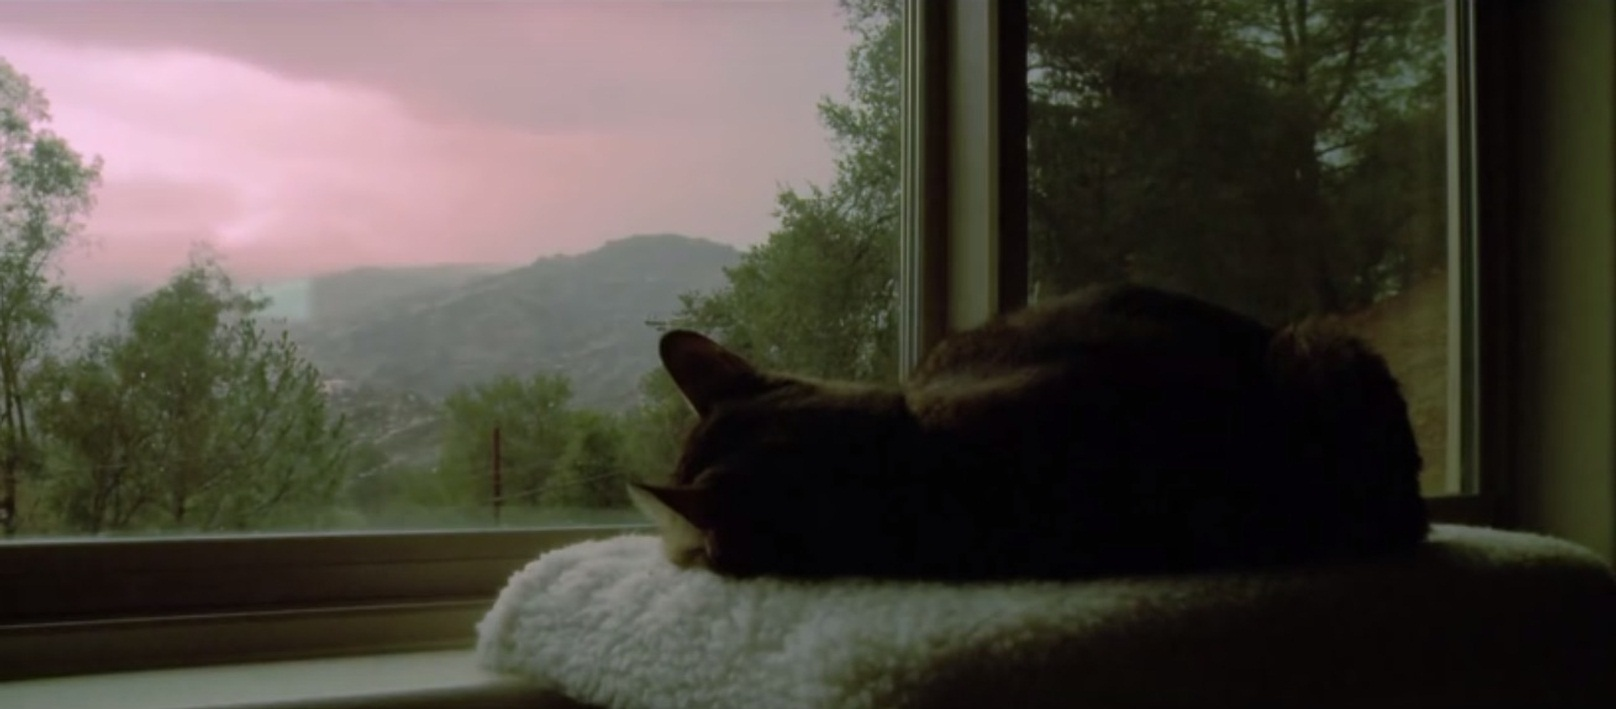 A peaceful time-lapse video of a cat sleeping through storm